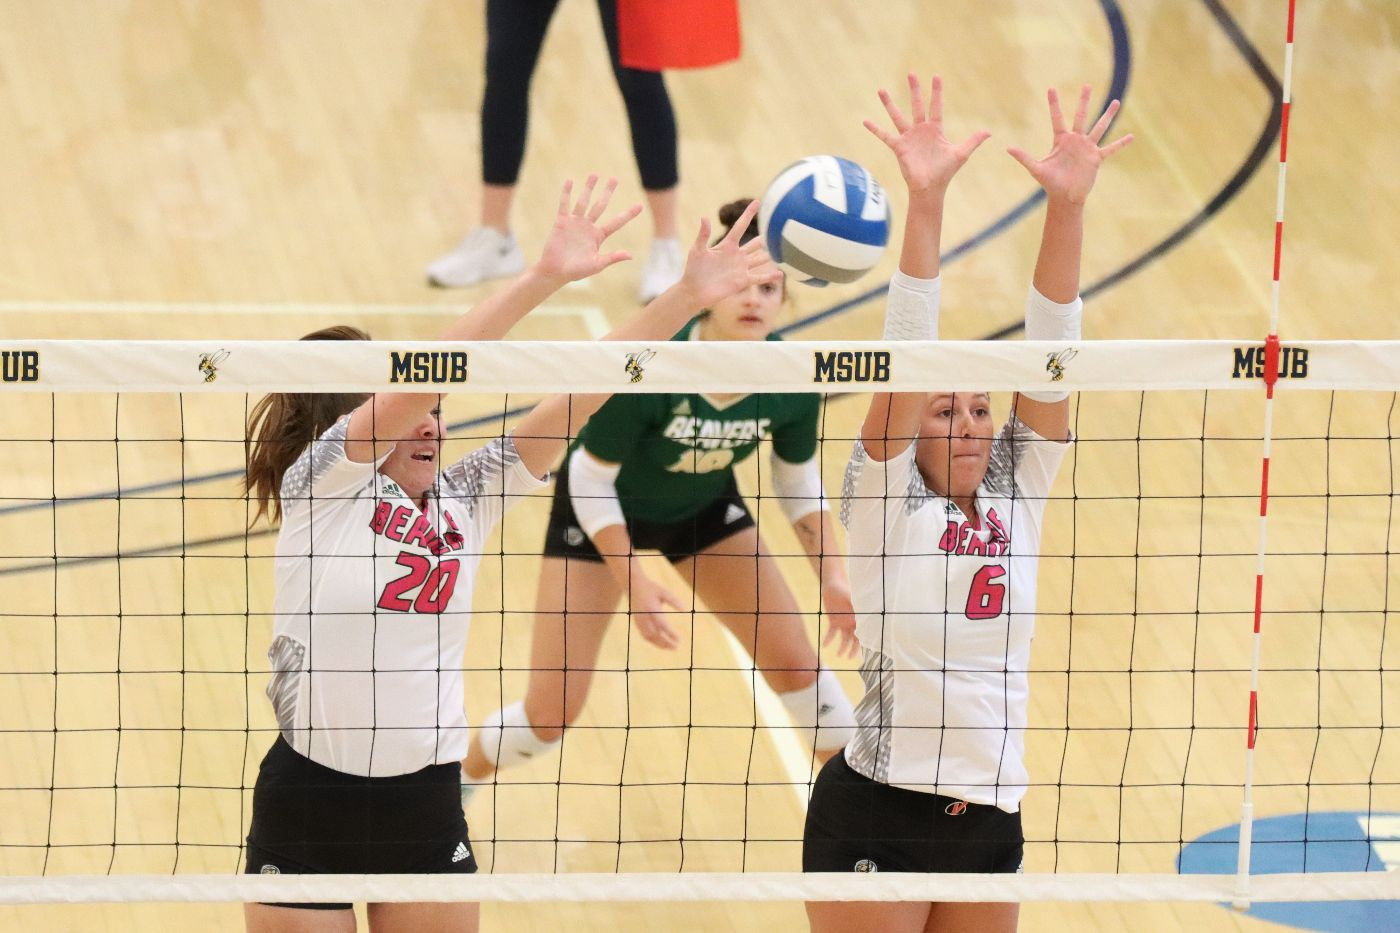 BSU Volleyball falls to Wheeling and Missouri S&T on first day of UIndy Invite